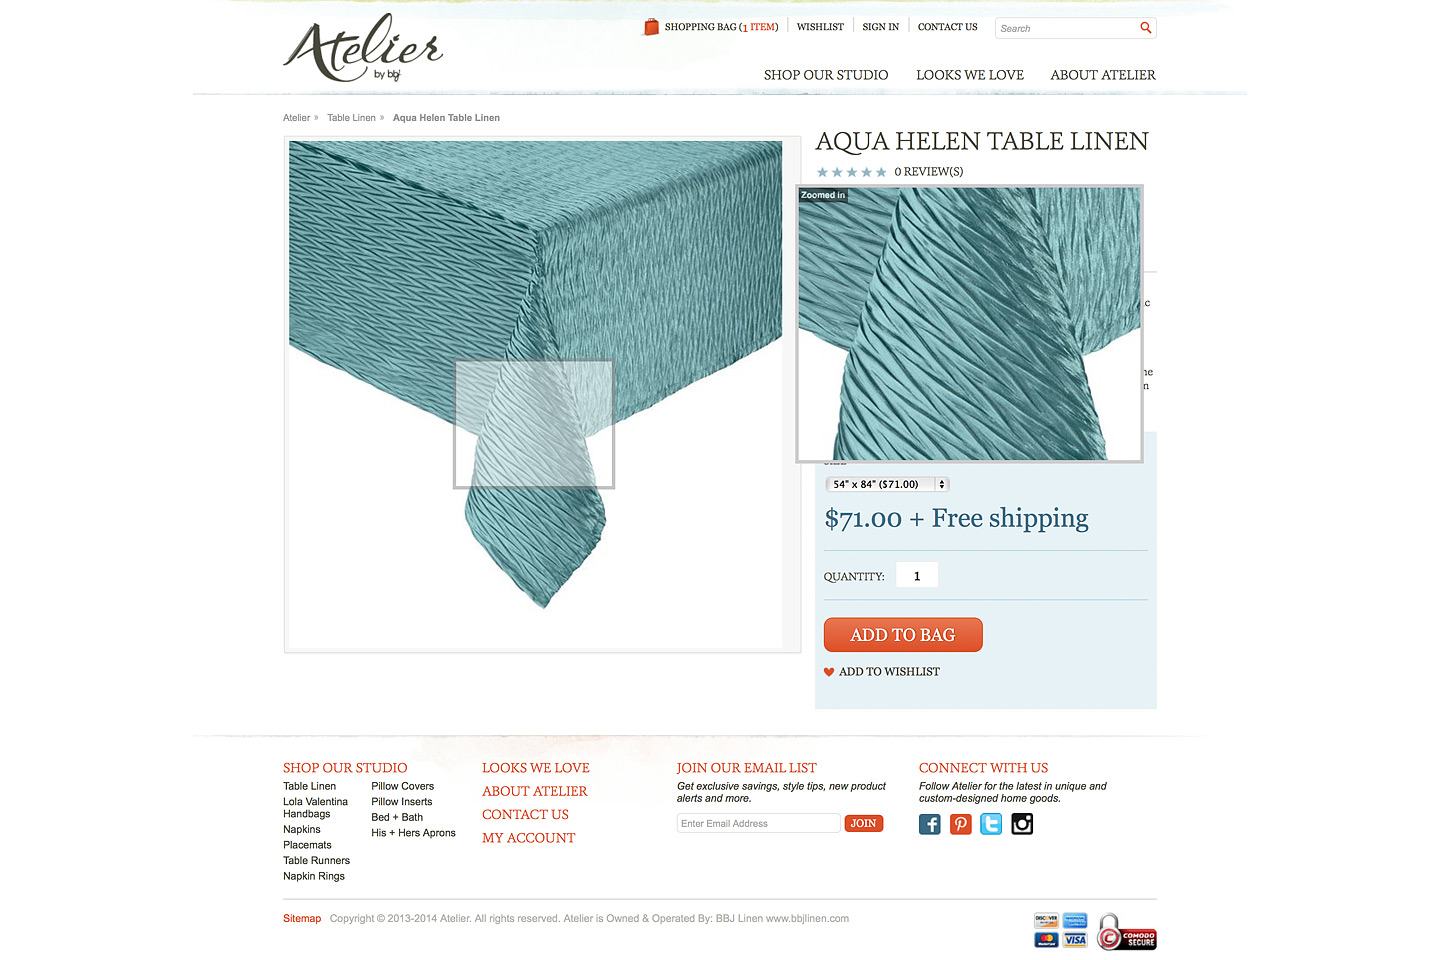 a screen capture of the atelier by bbj aqua helen table linen product page, featuring live zoom functionality as the mouse hovers over the large product image